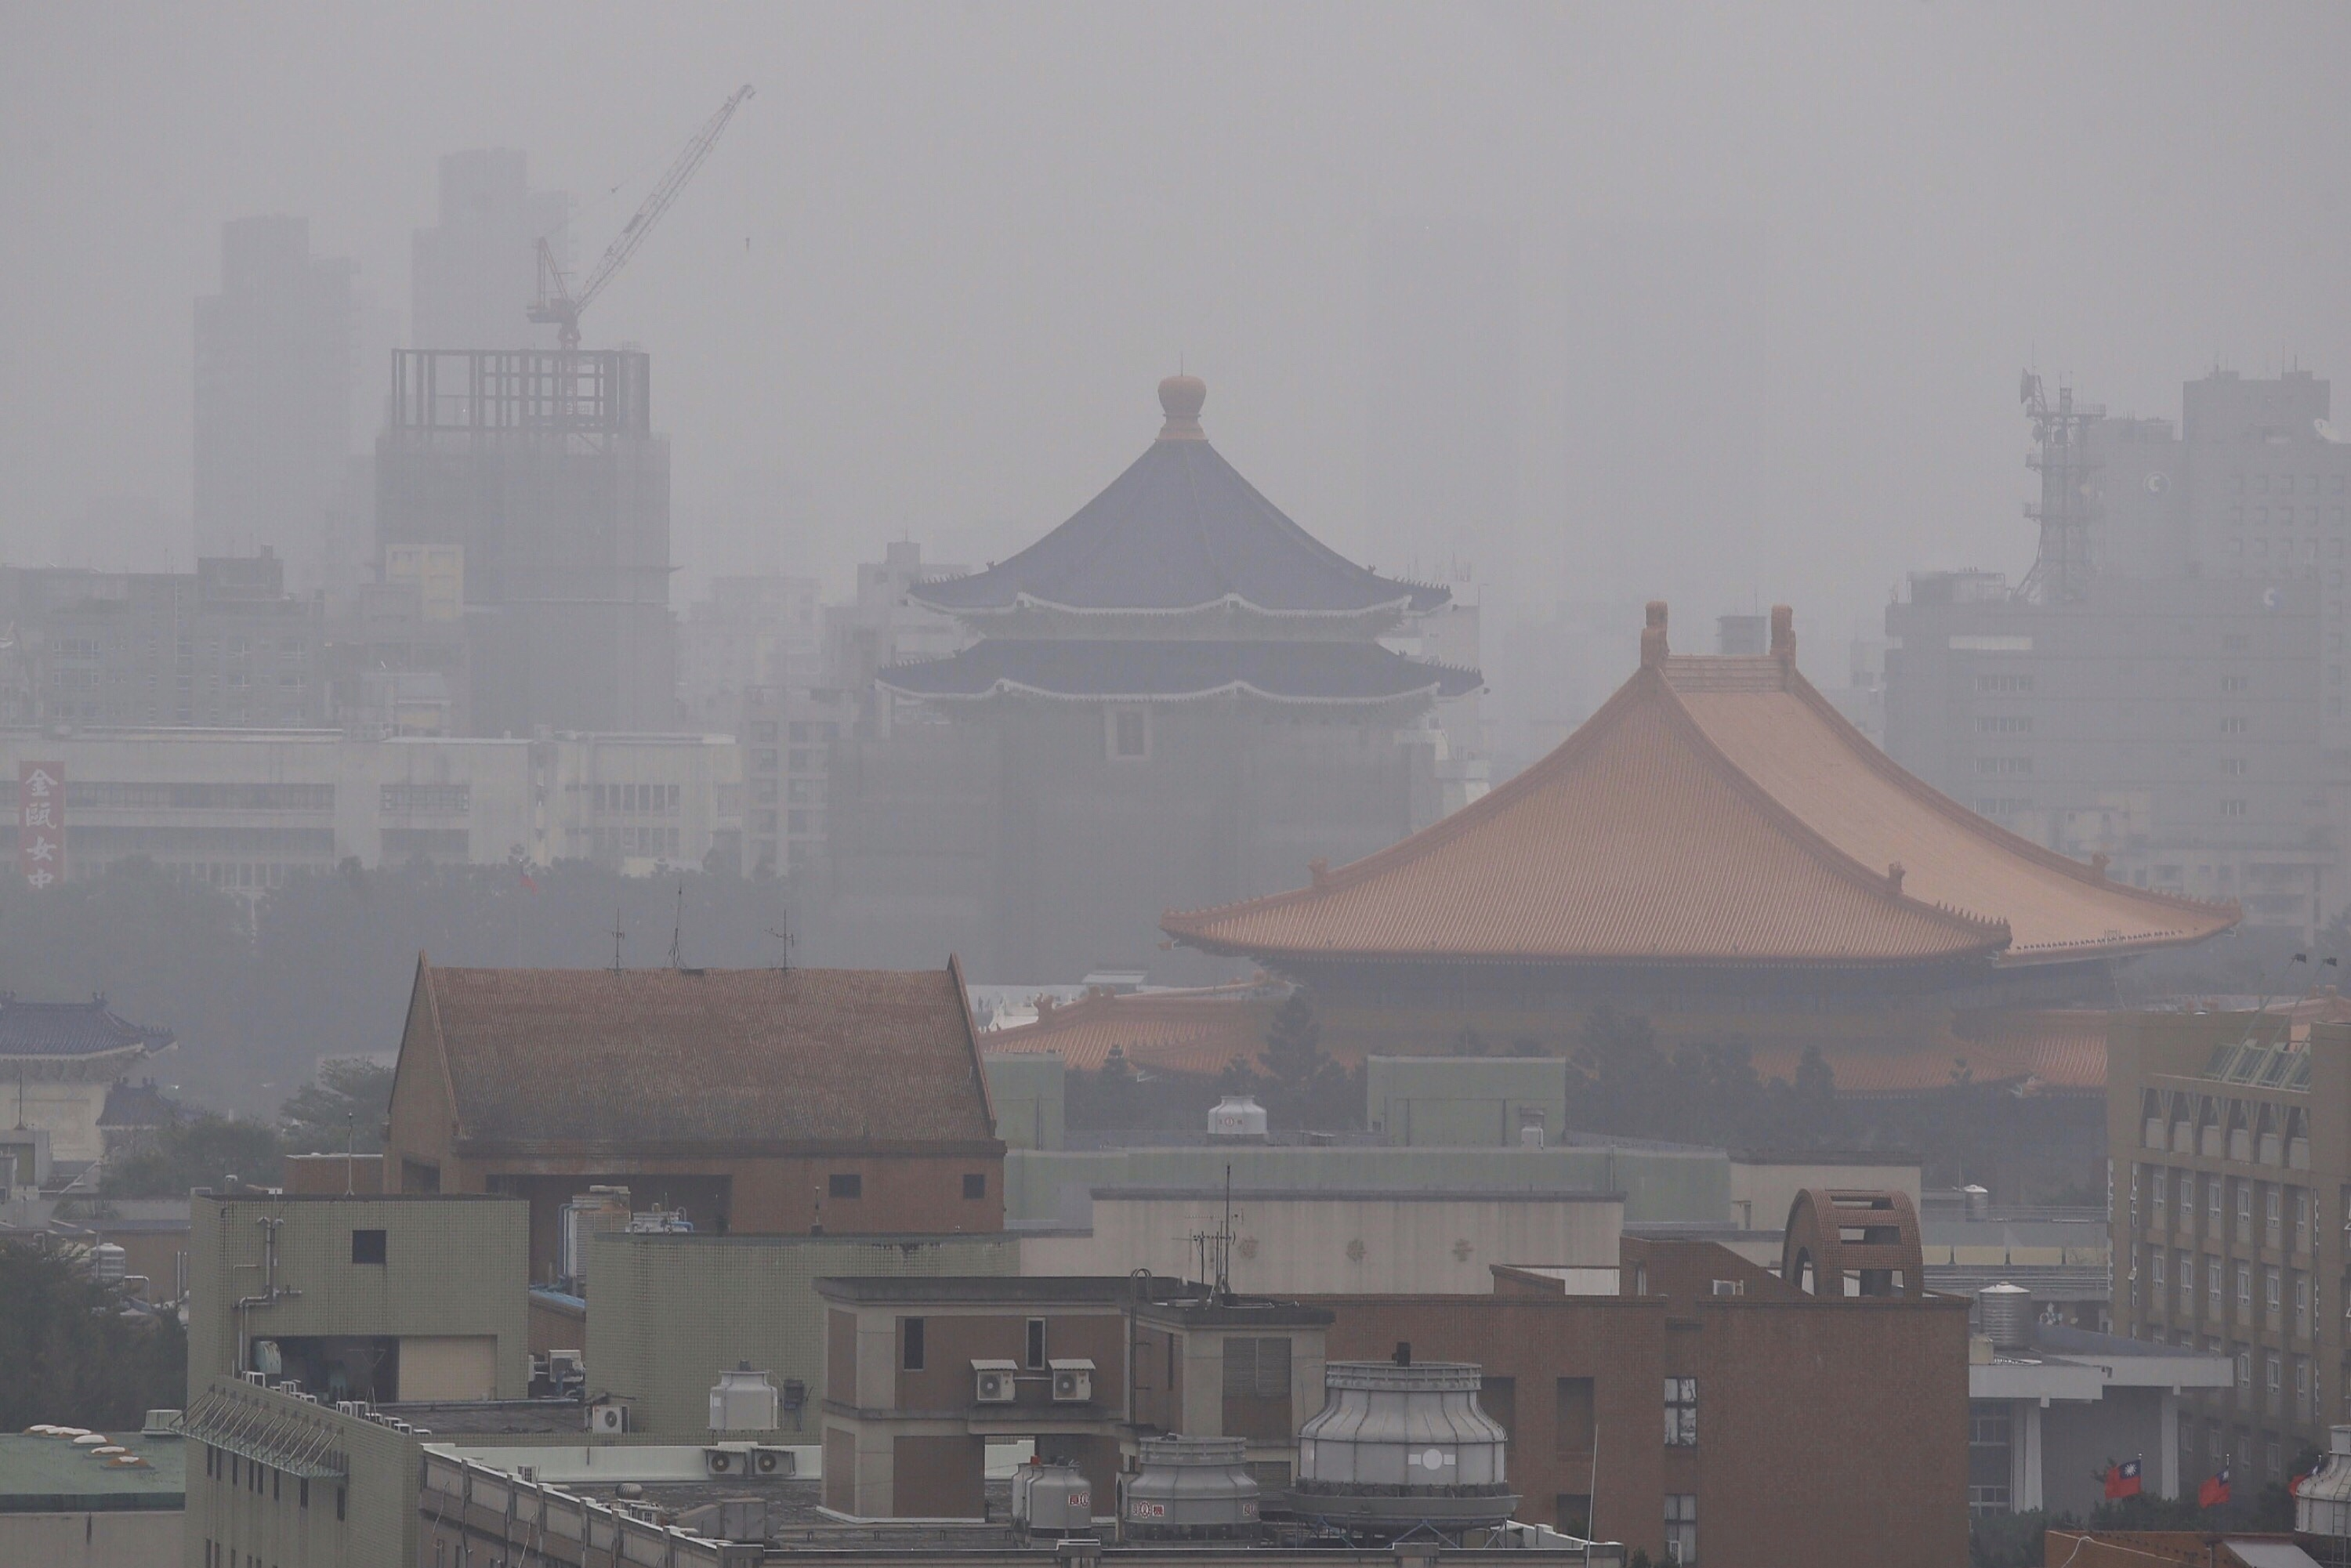 2017 ends with Taiwan shrouded in air pollution